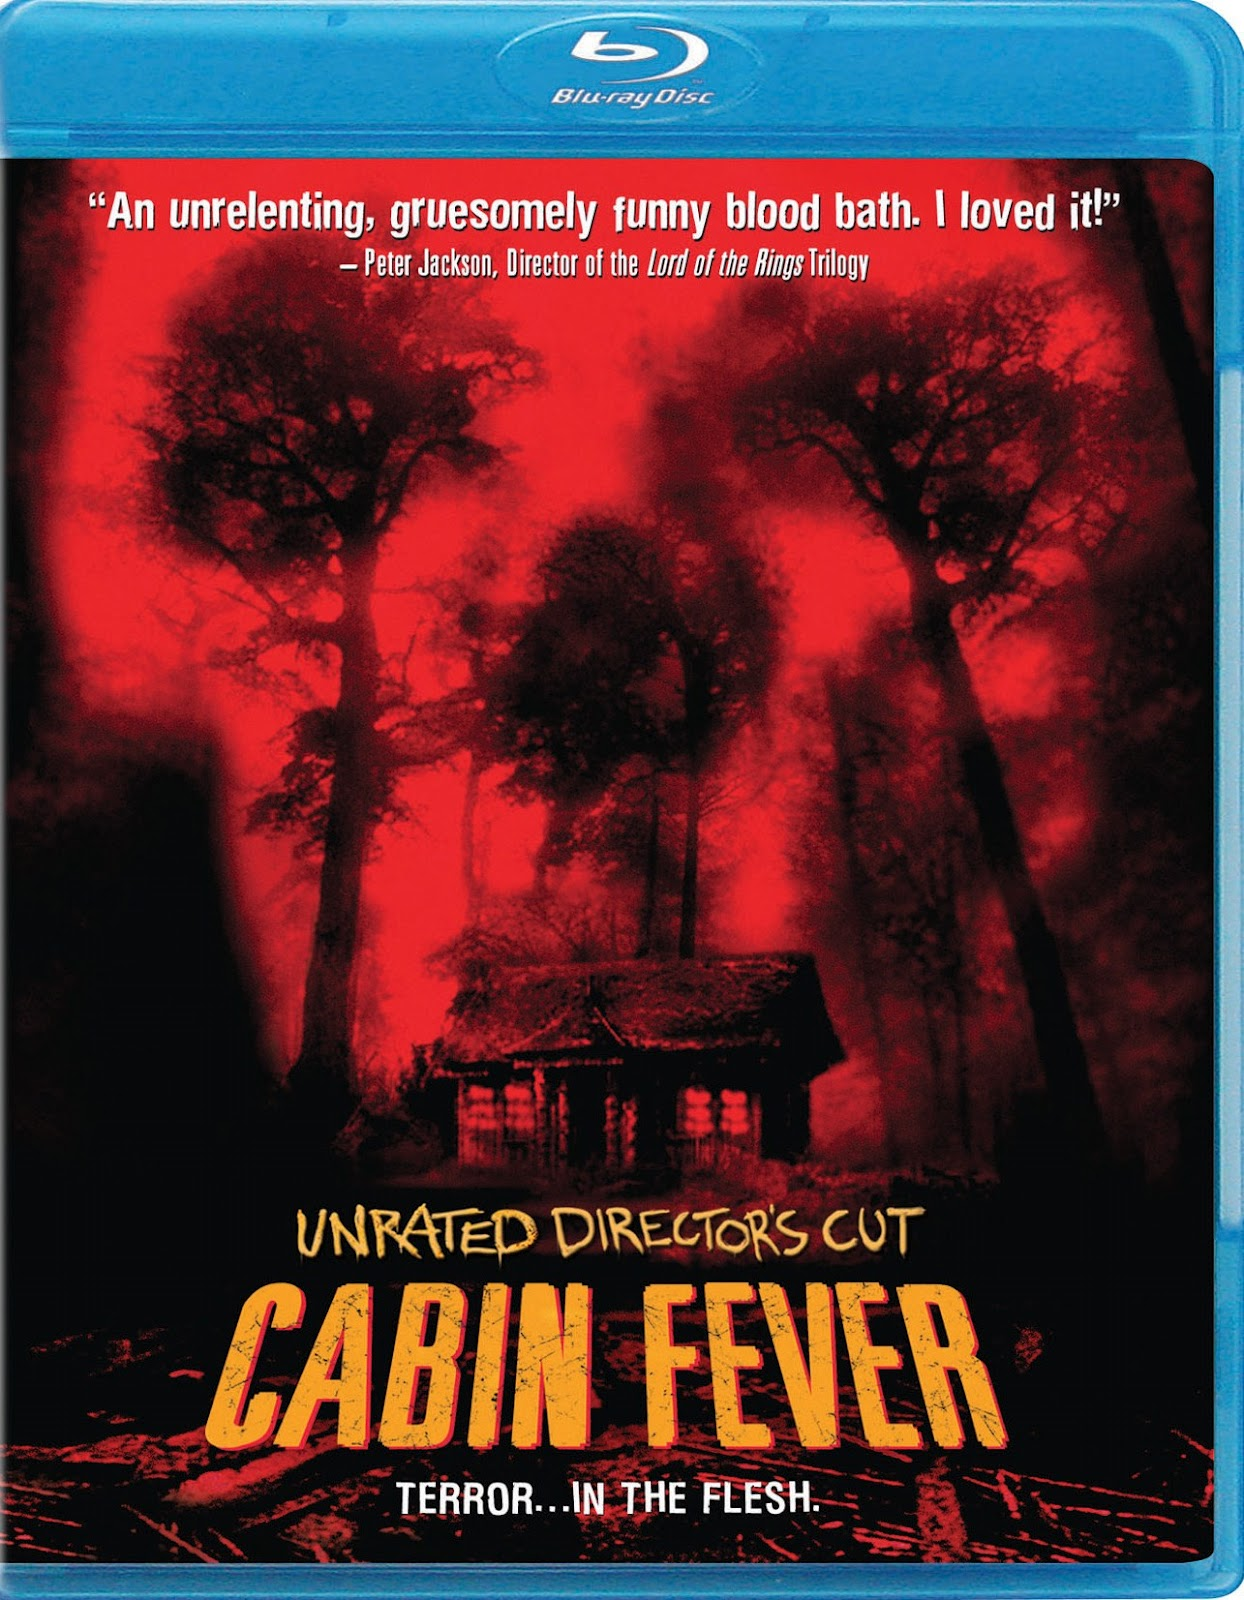 cabin fever images - photo #8